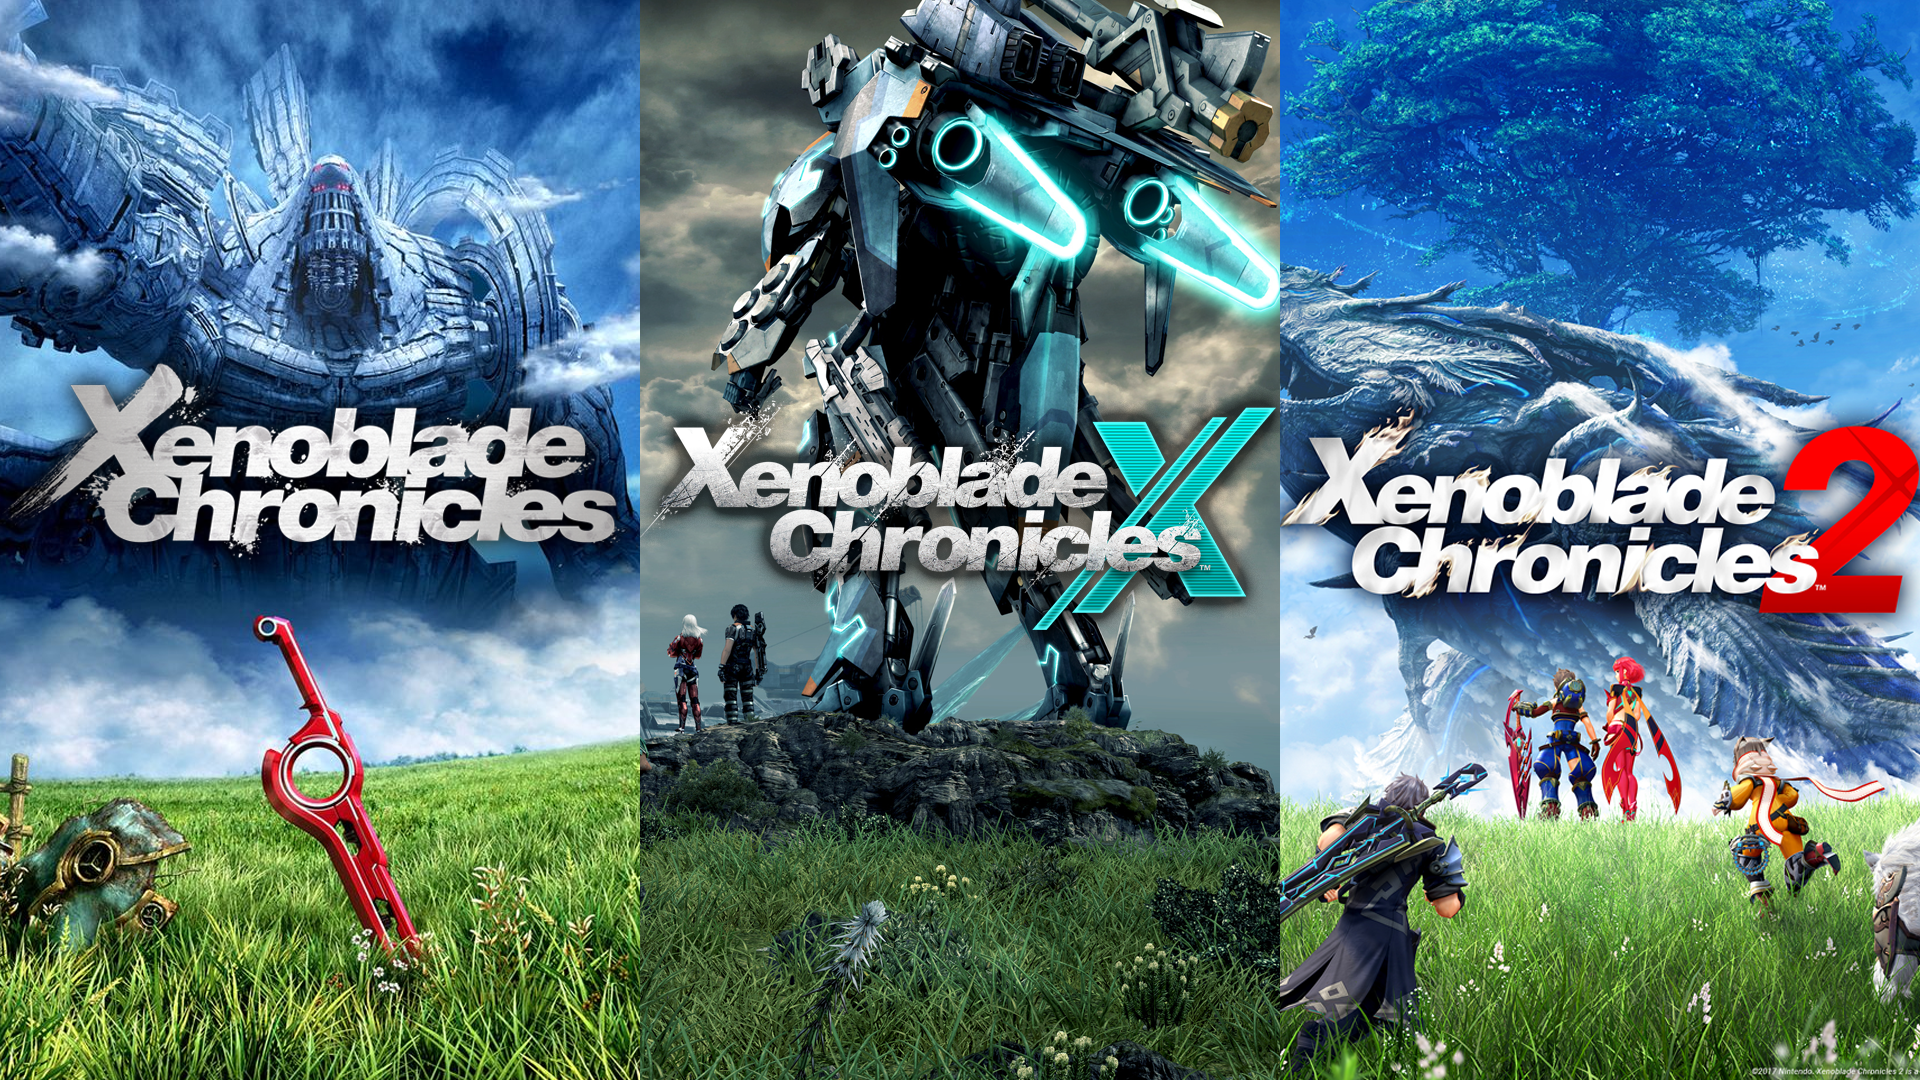 Www Eeshops Net Xenoblade Chronicles 2 Xenoblade Chronicles